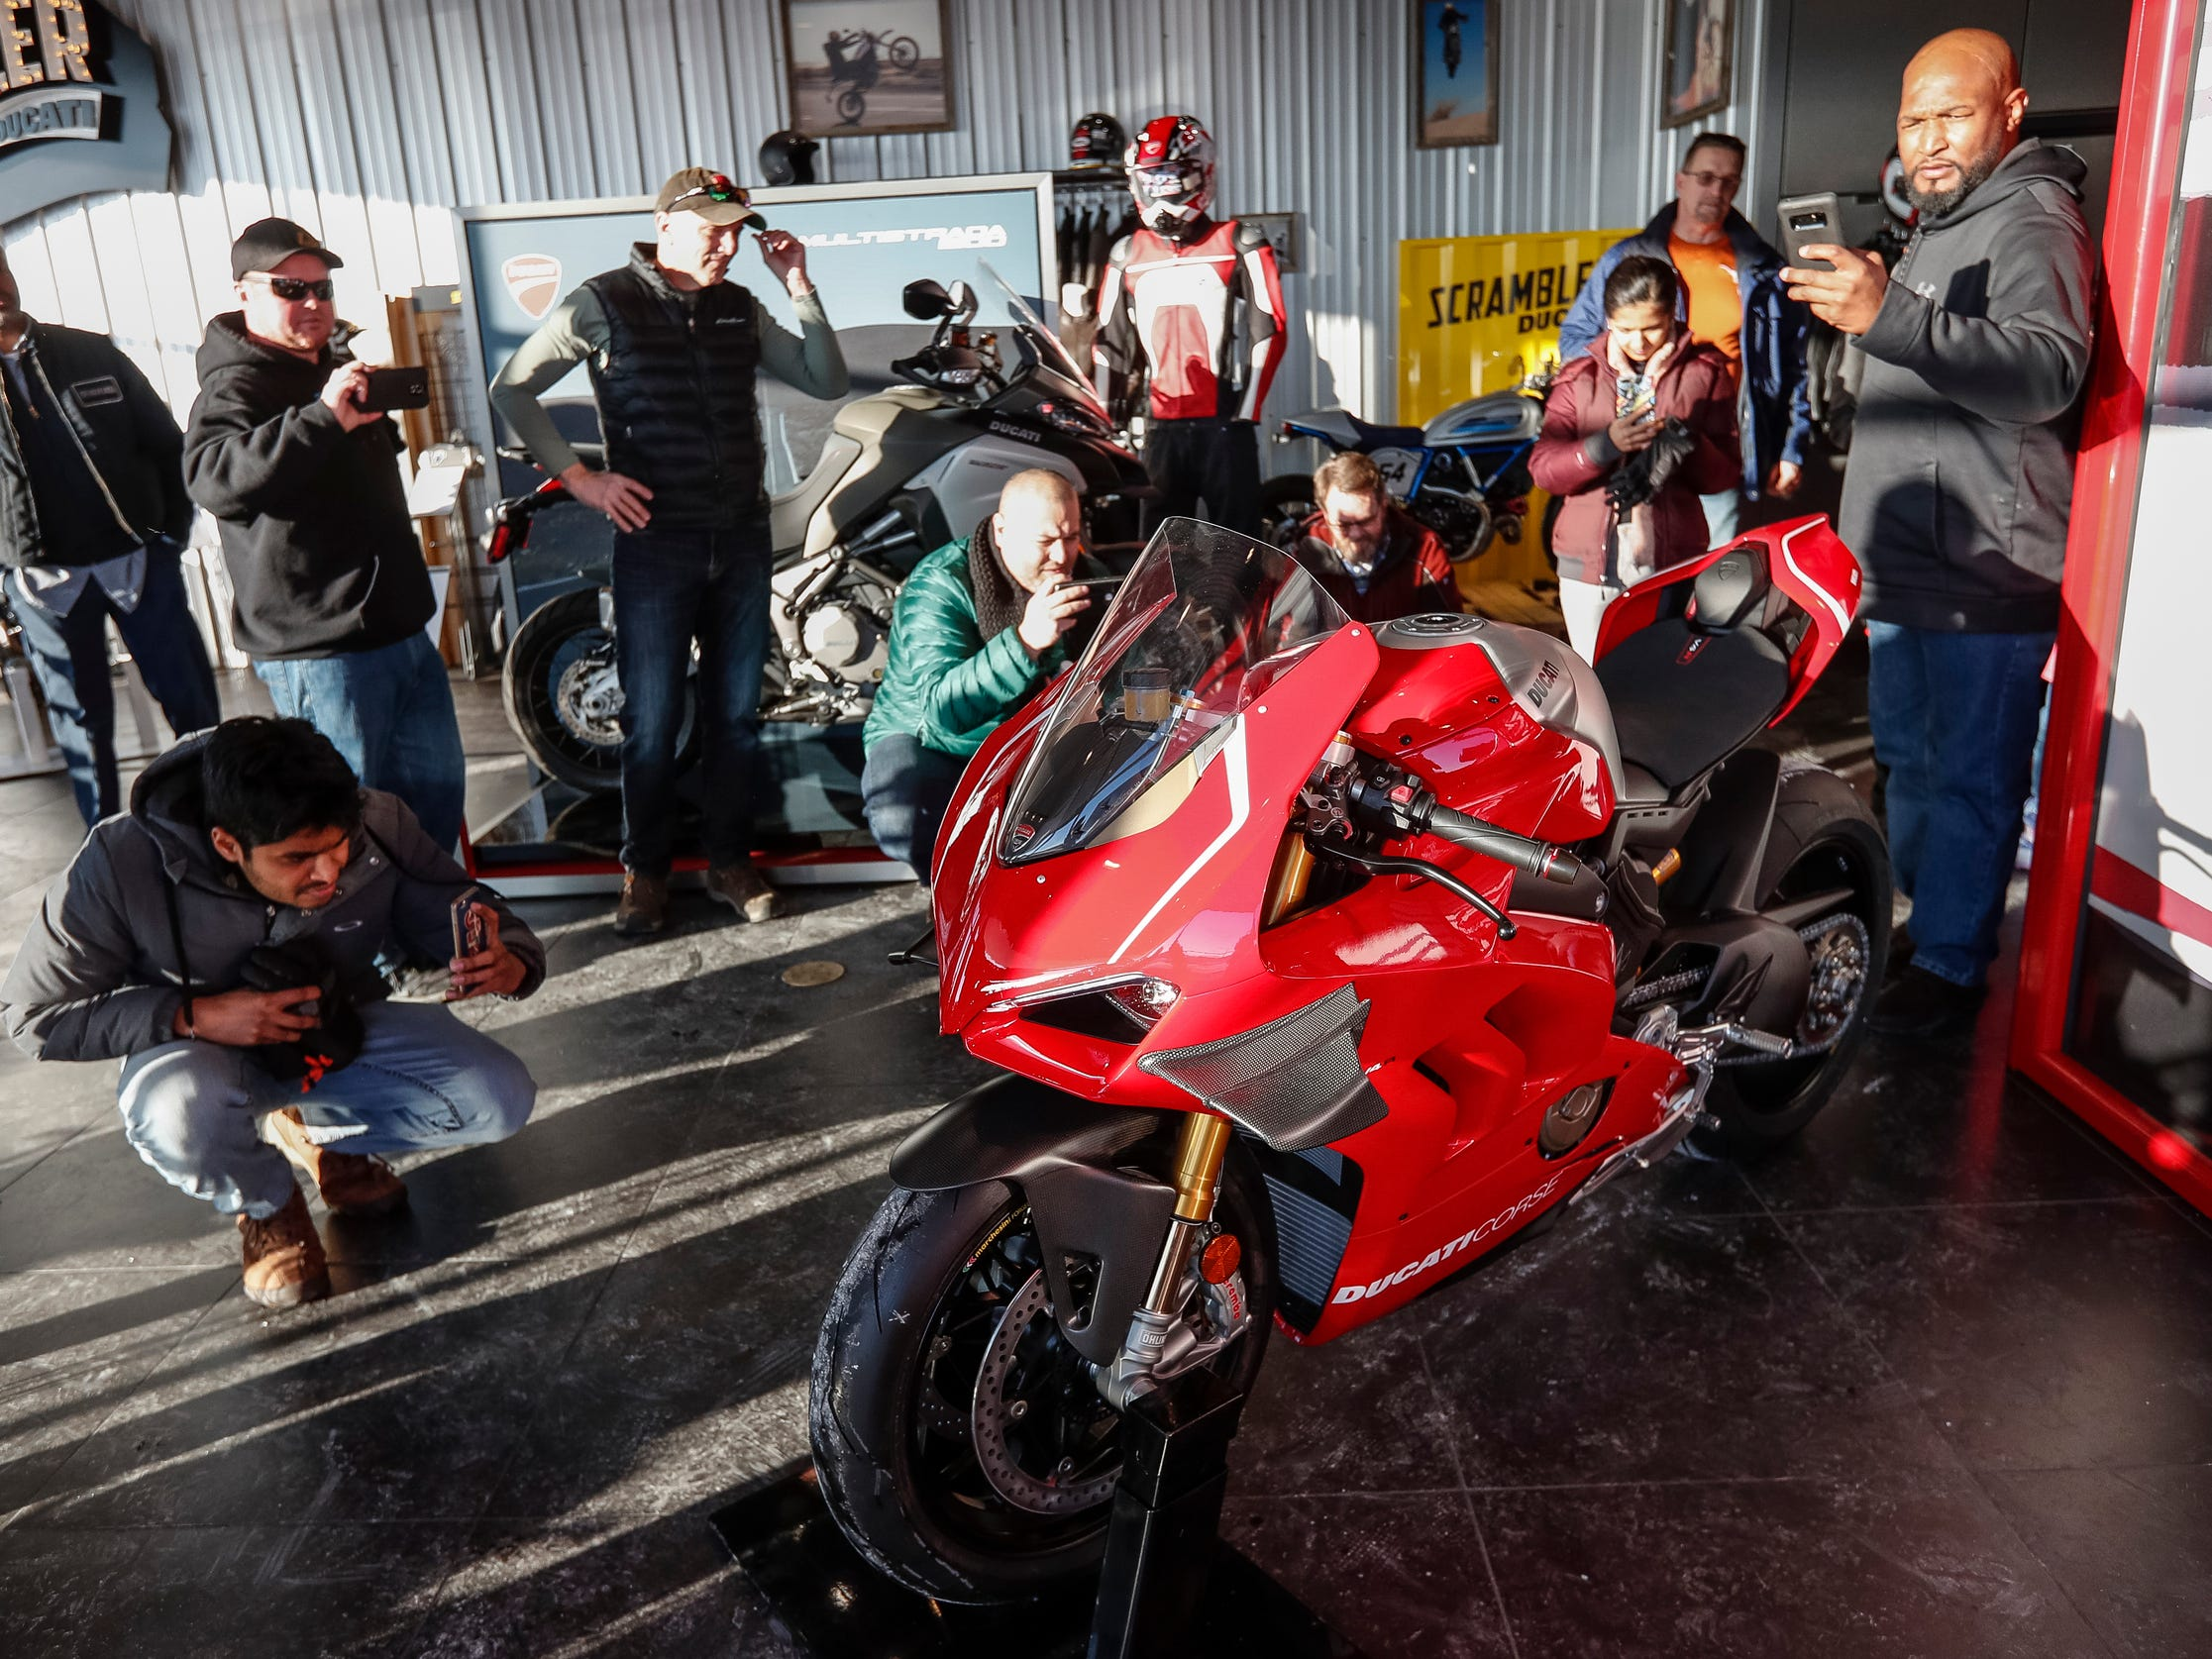 Motorcycle fans take photos and videos as the Ducati 2019 Panigale V4 R on display at Ducati Detroit in Birmingham, Wednesday, Jan. 30, 2019.